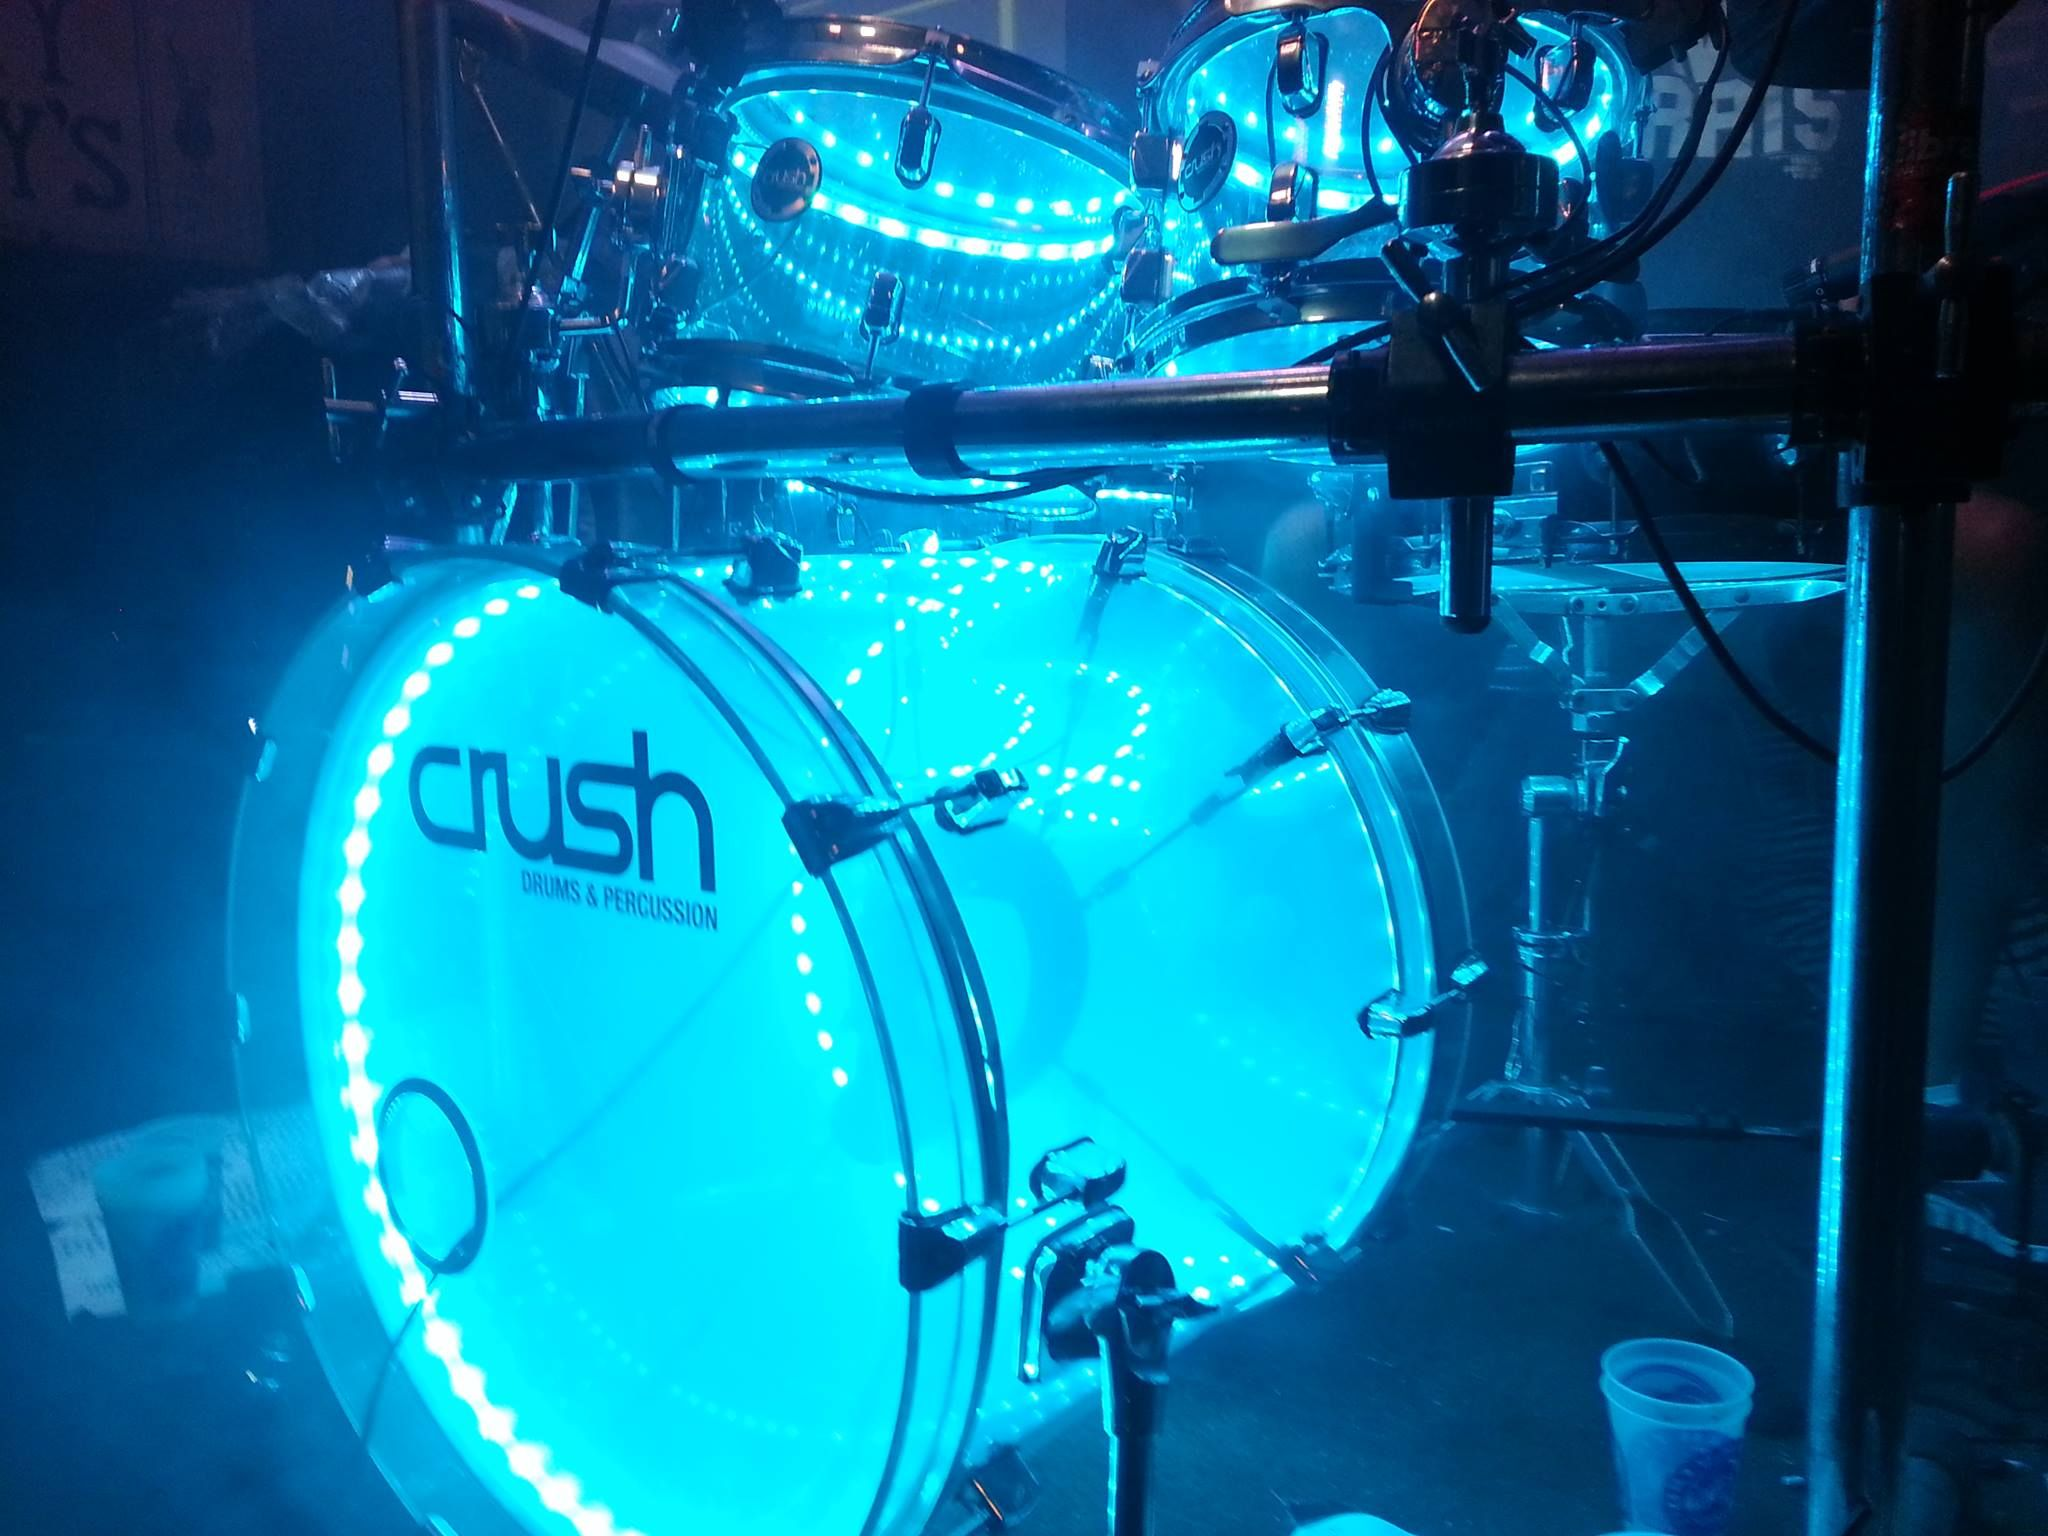 Bateria Musica Porno new drums   drums, light up, music instruments